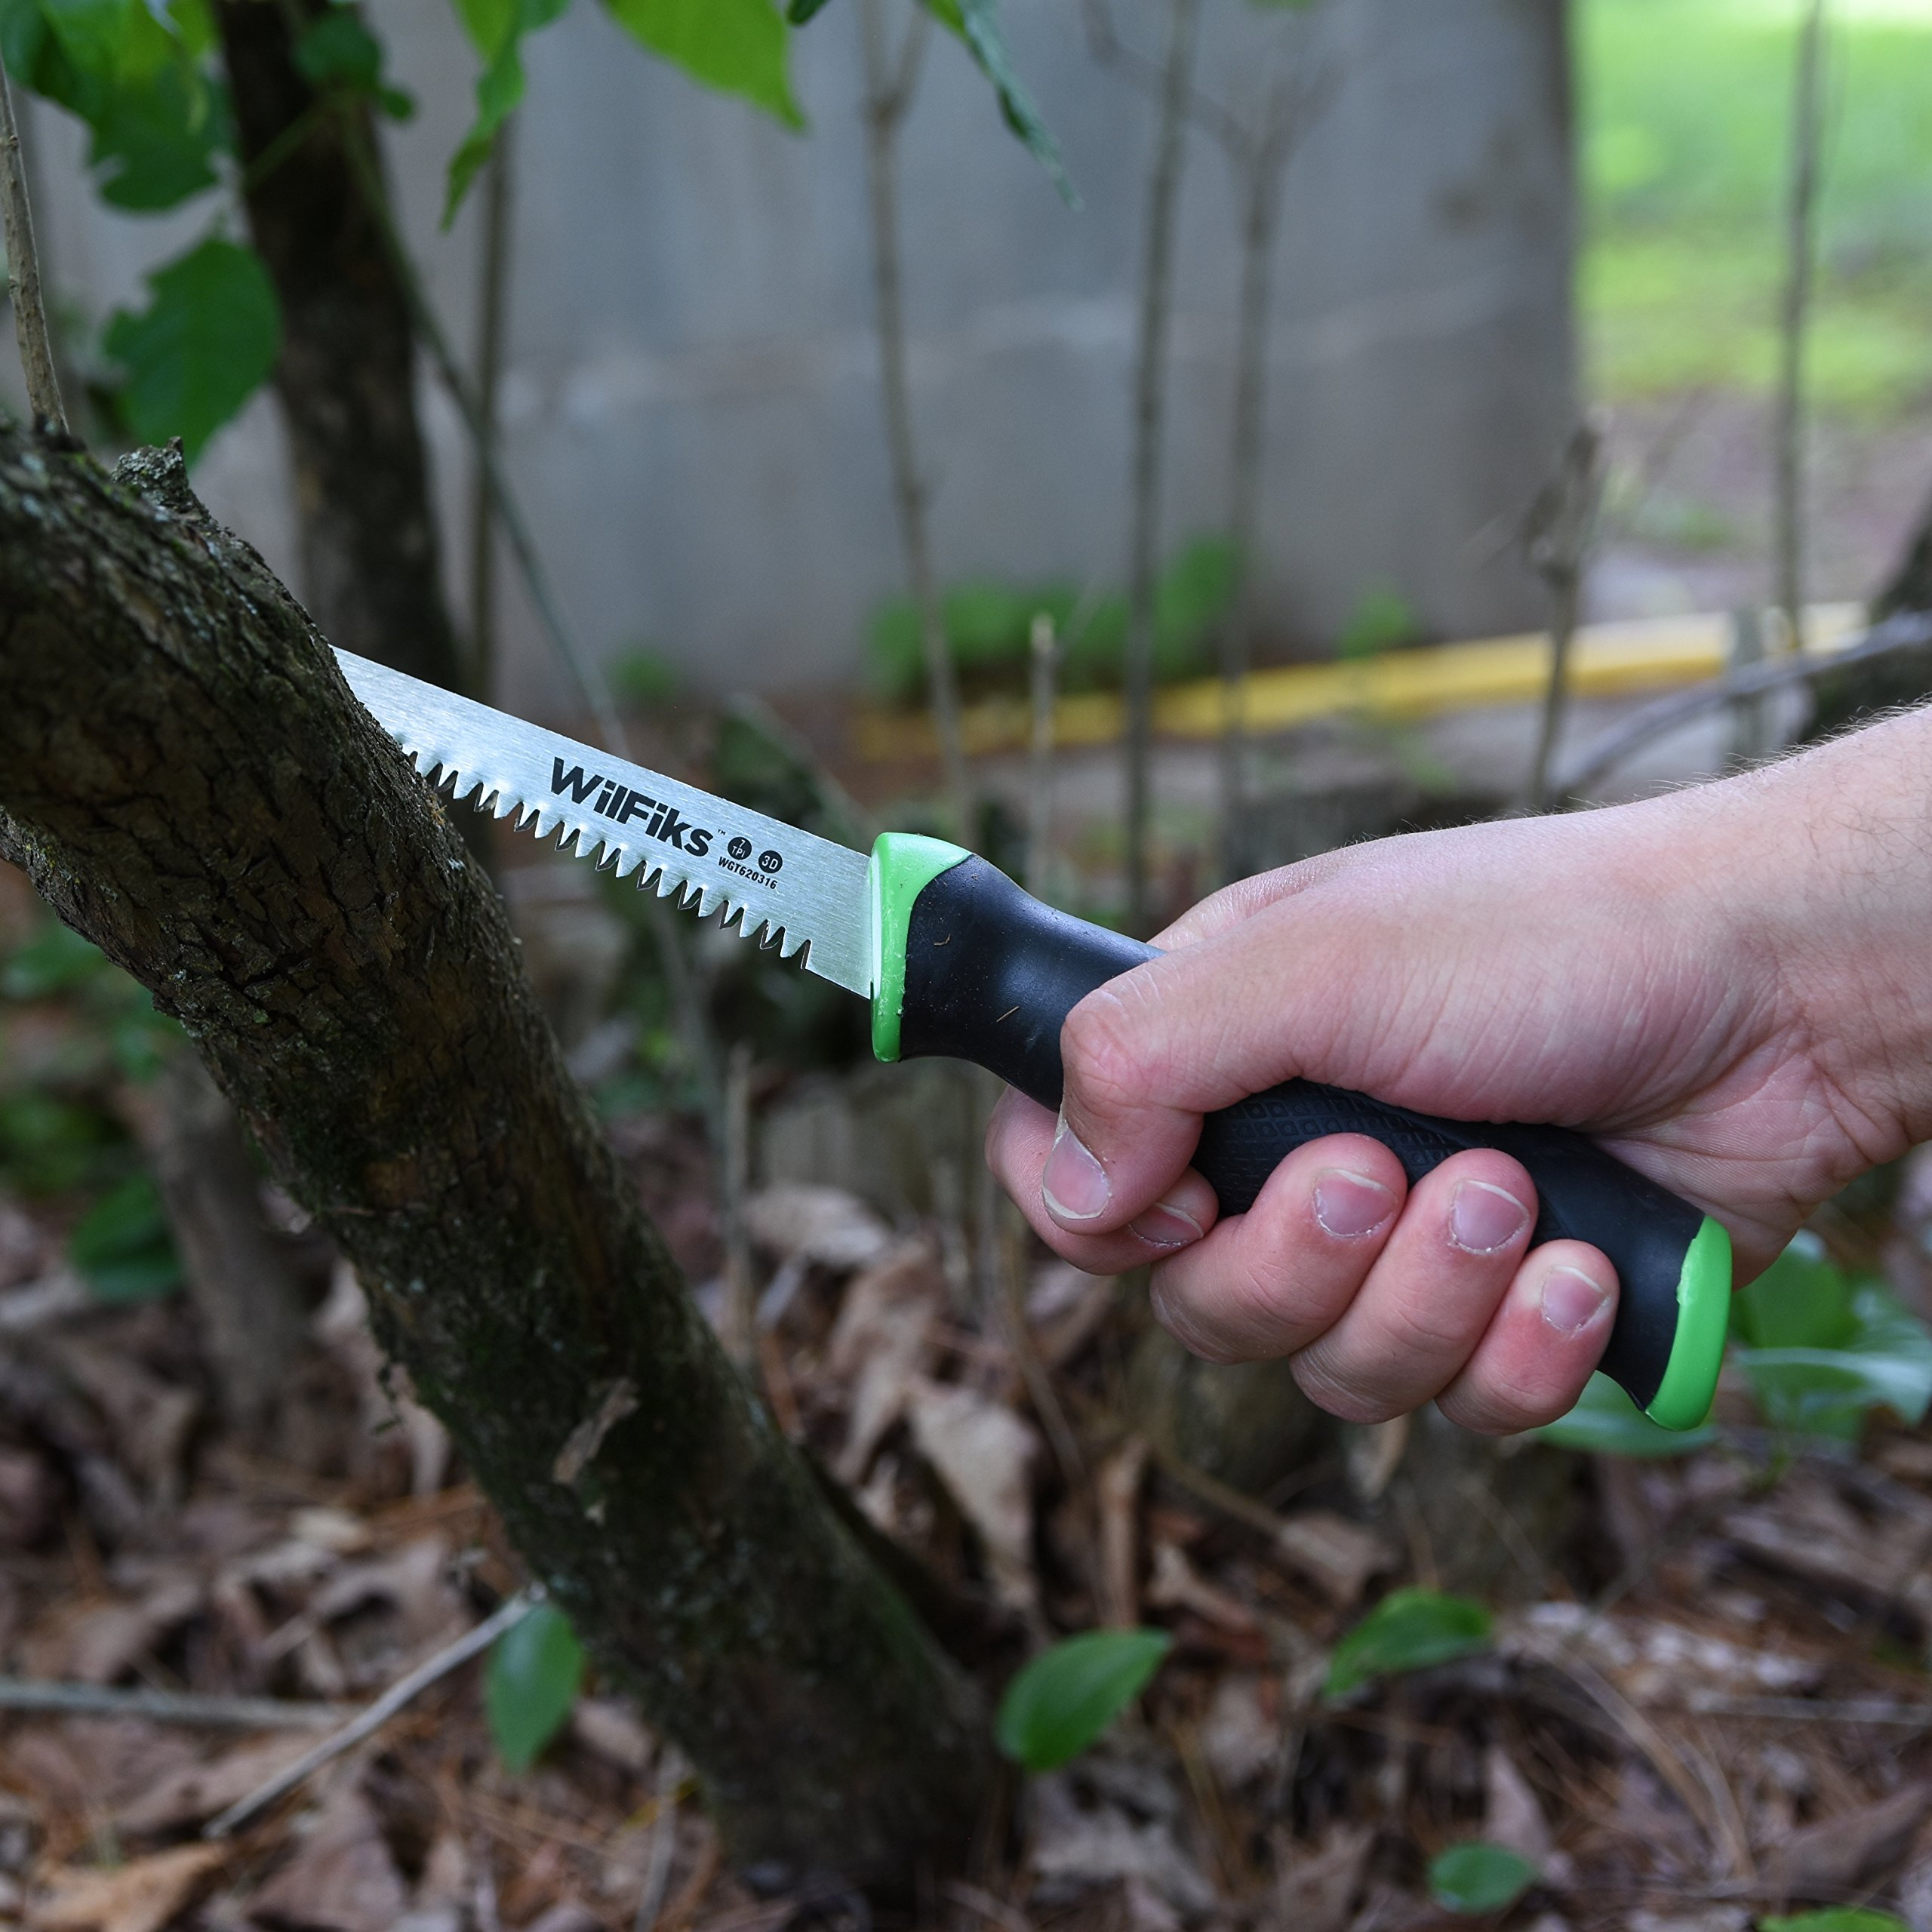 """WilFiks Razor Sharp 6.5"""" Pro Jab Saw, Drywall Hand Saw, Perfect For Sawing, Trimming, Gardening, Pruning & Cutting Wood, Wallboards & More, Comfortable Ergonomic Non-Slip Handle, Has A Sharpened Tip by WilFiks (Image #5)"""